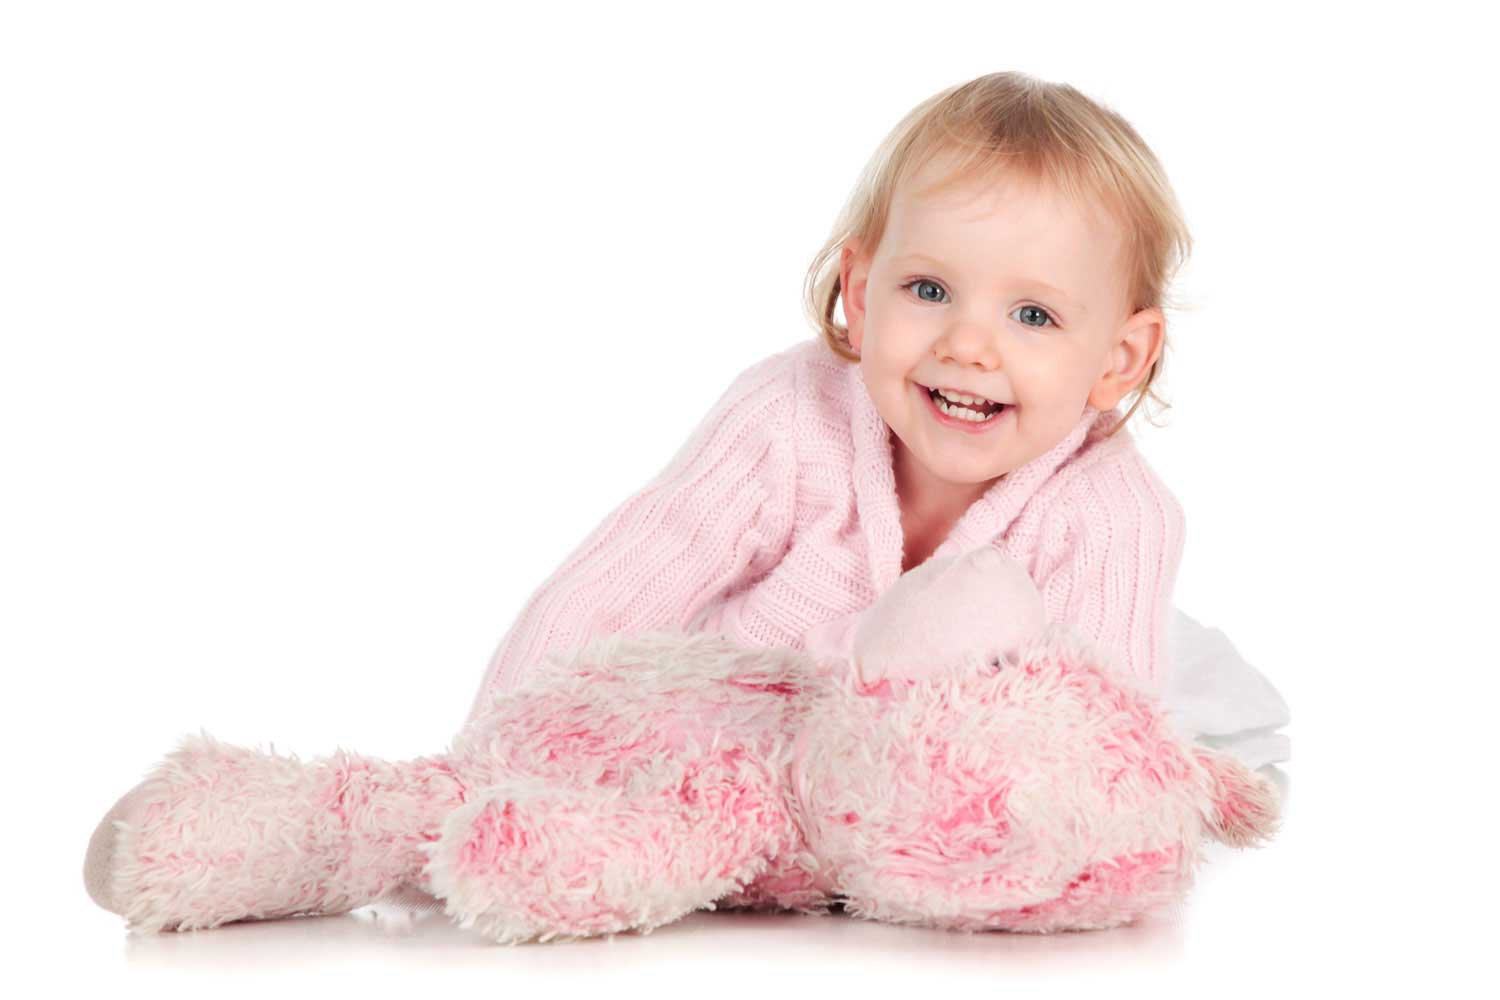 Baby And Toddler Portrait Photography 0034